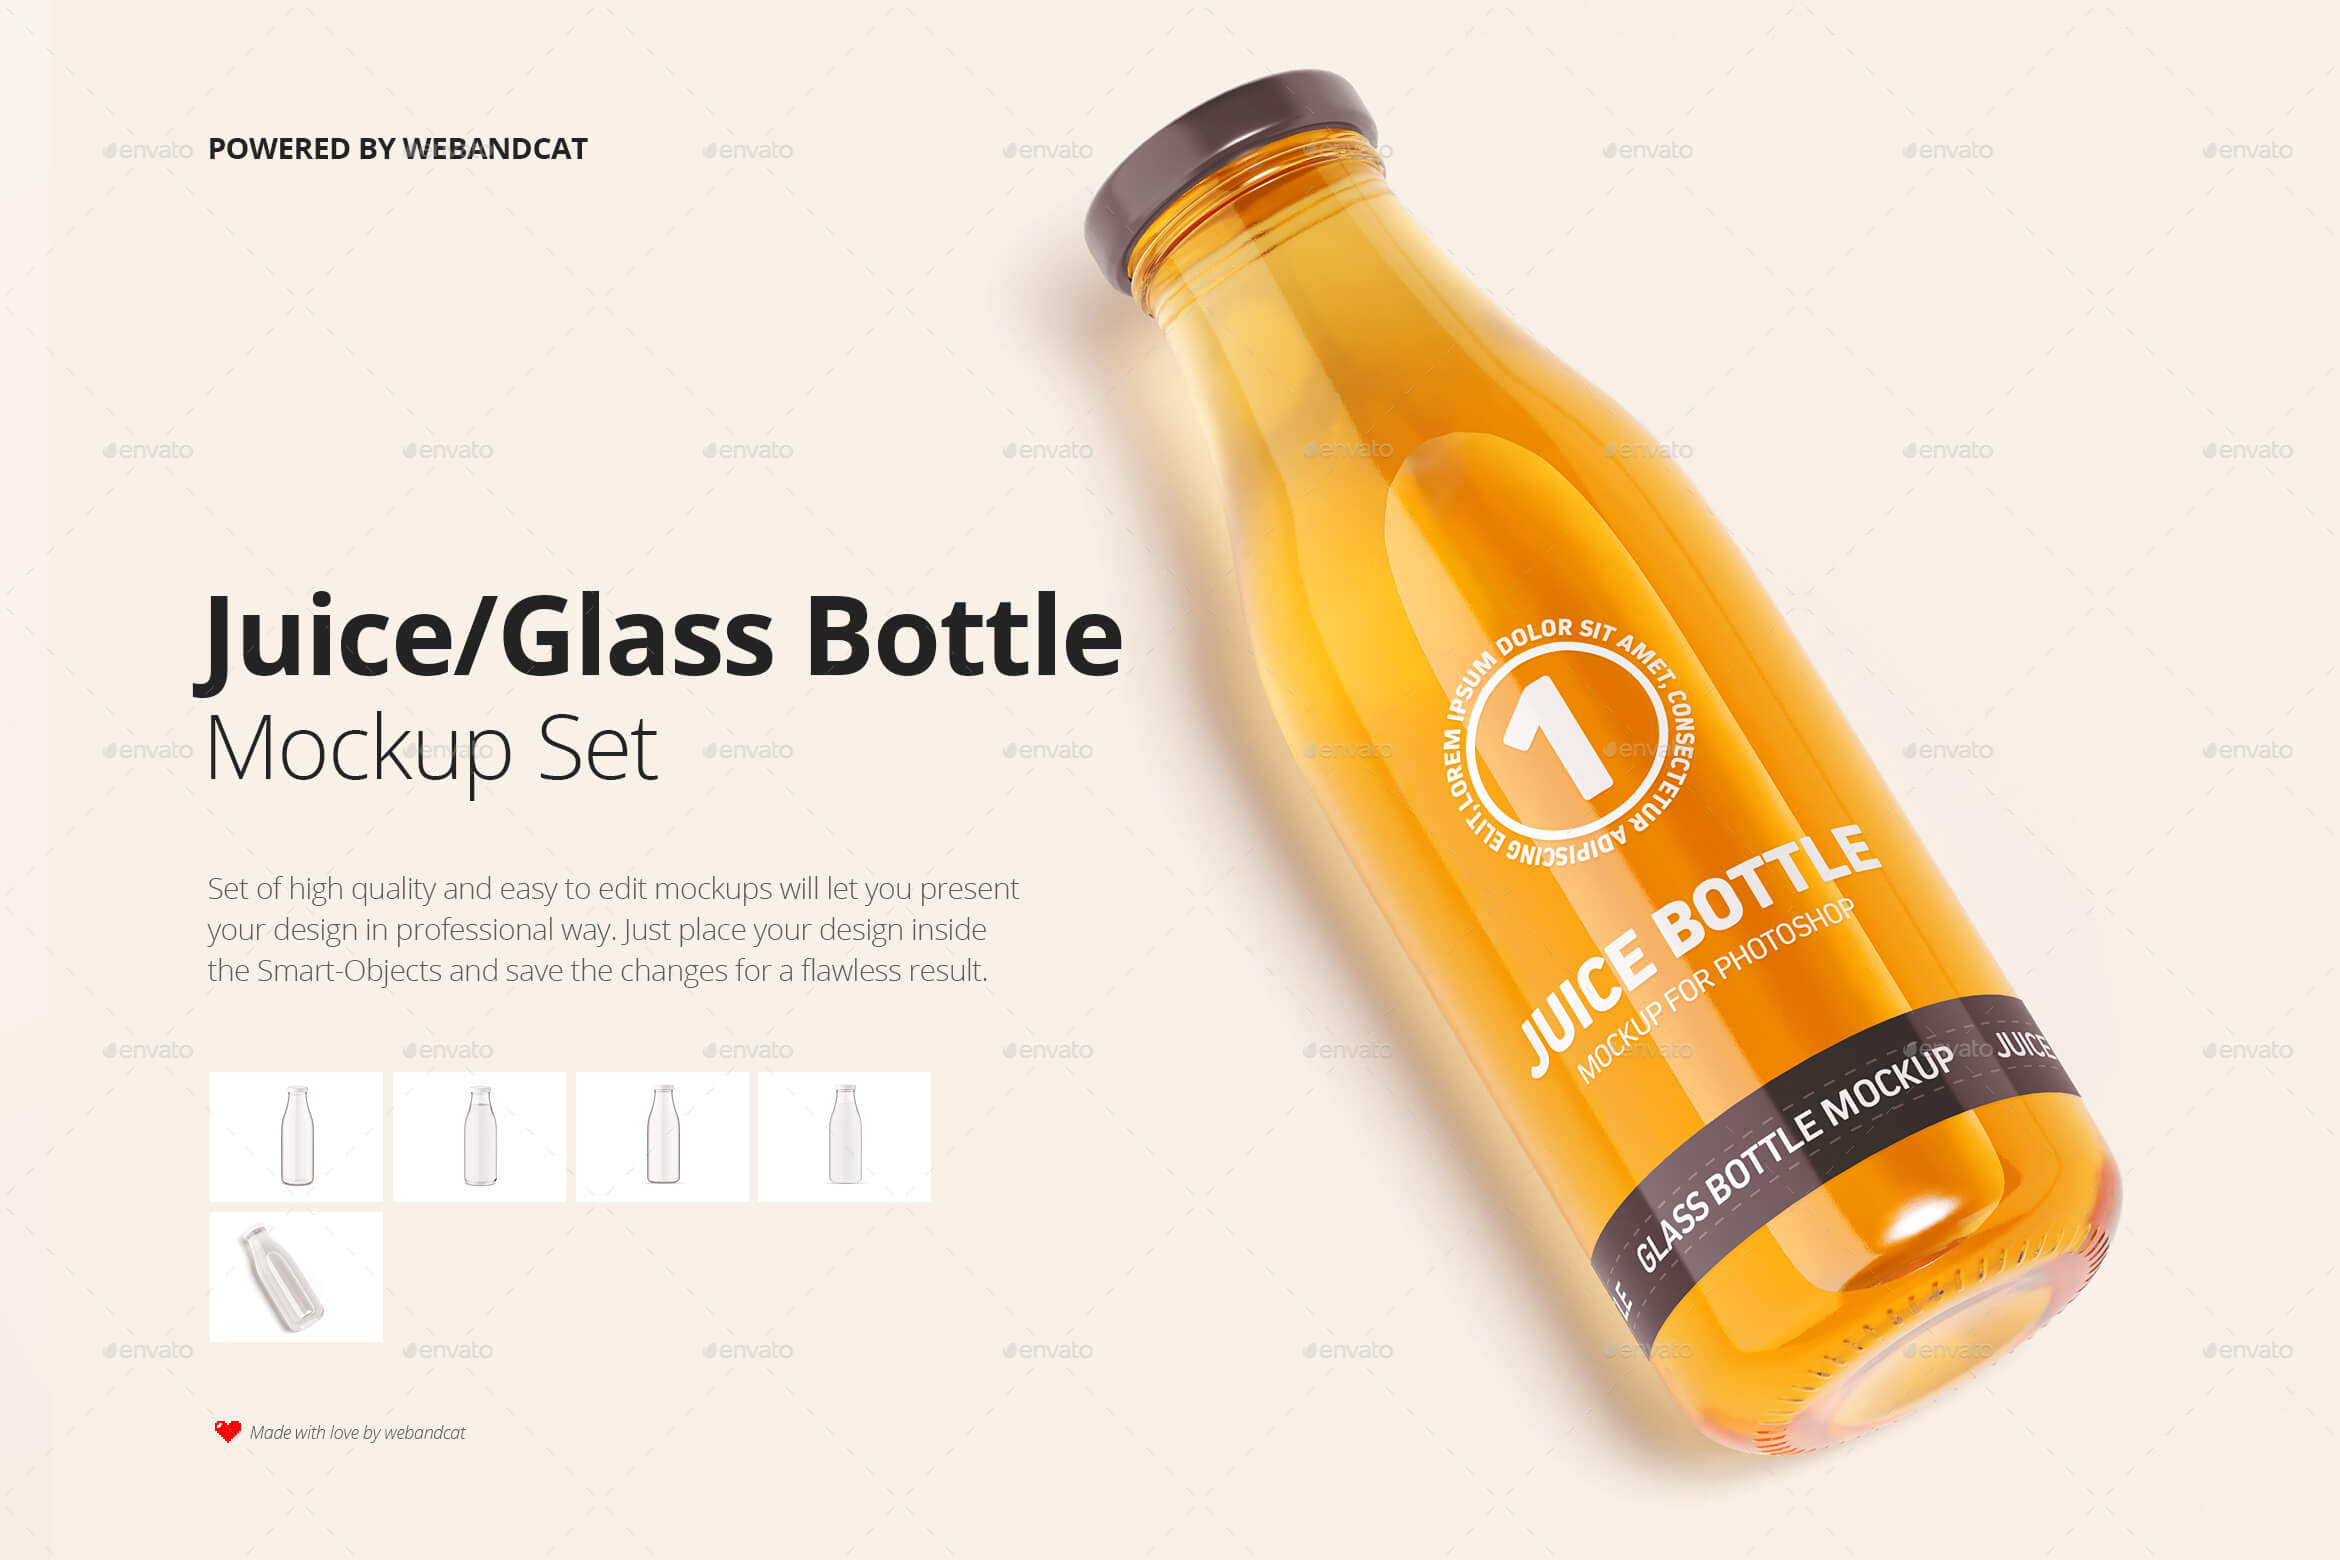 Juice / Glass Bottle Mockup